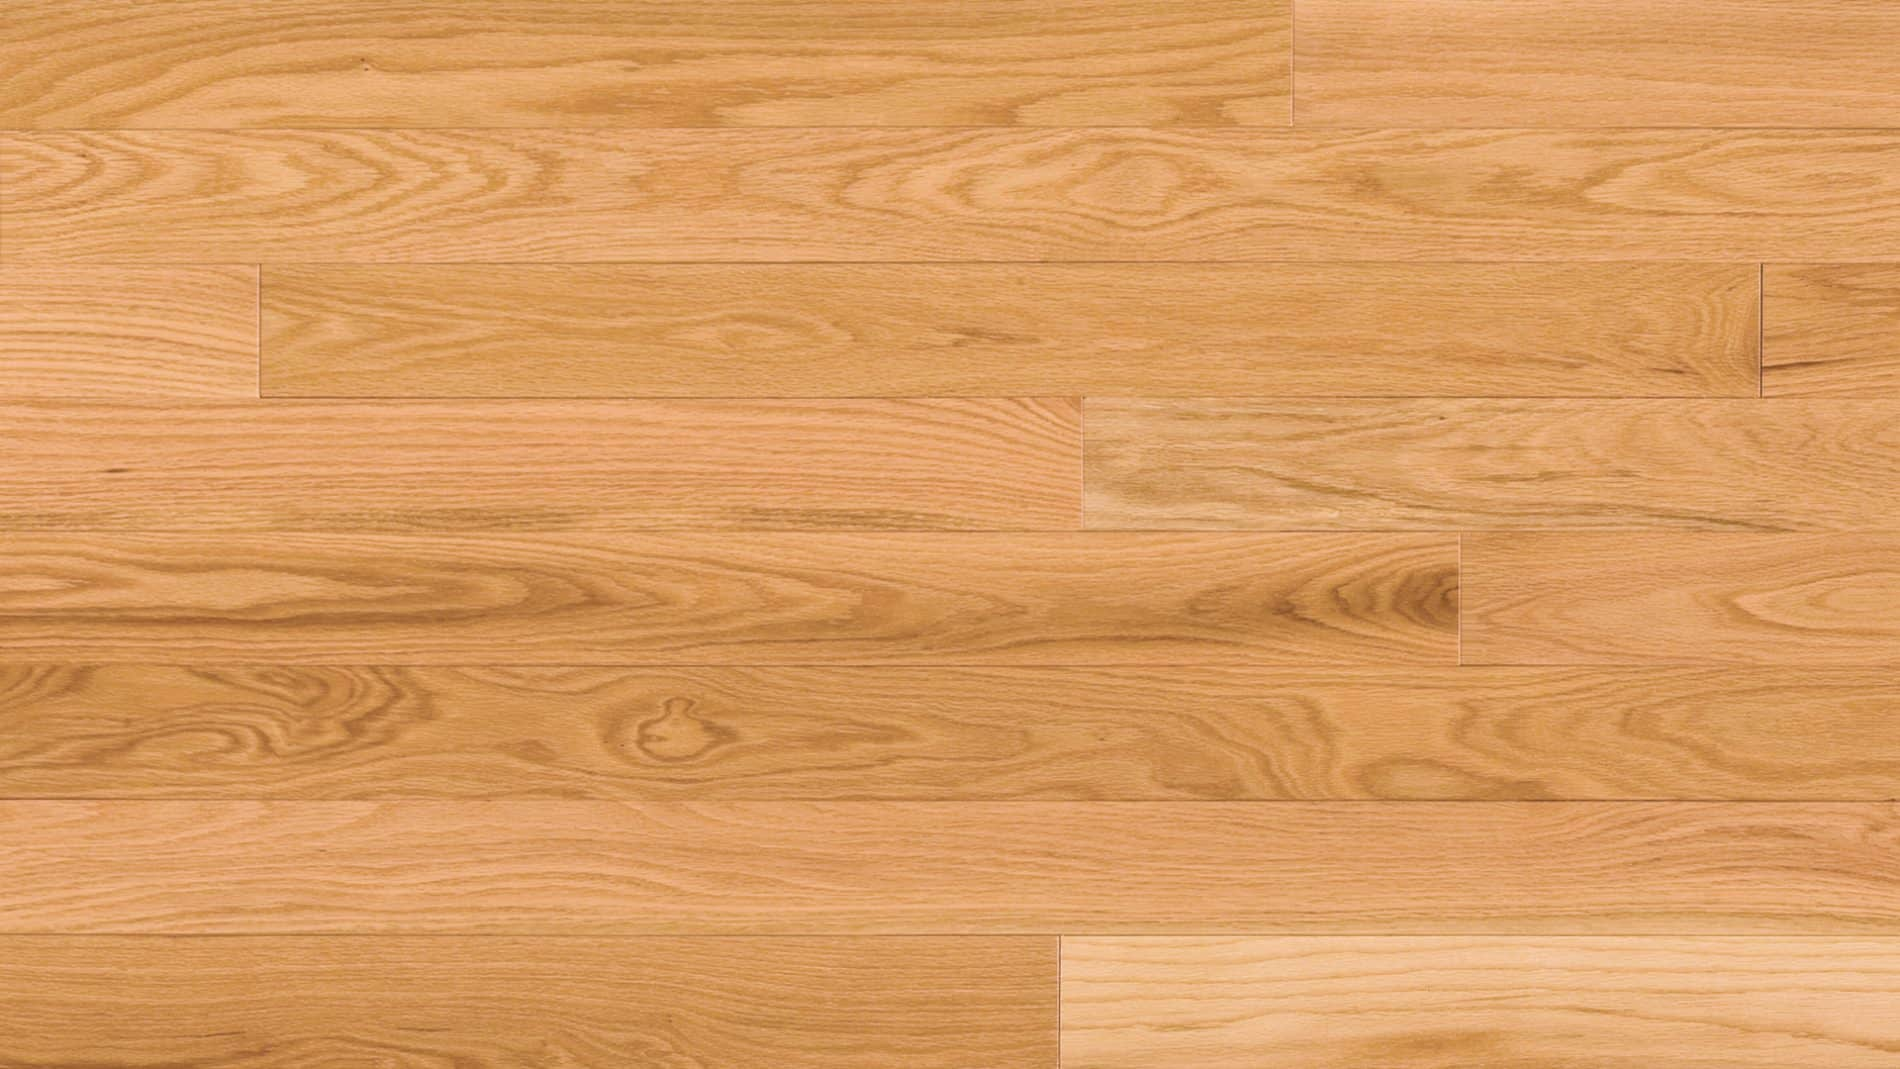 Red oak vogue natural dubeau floors for Natural floors